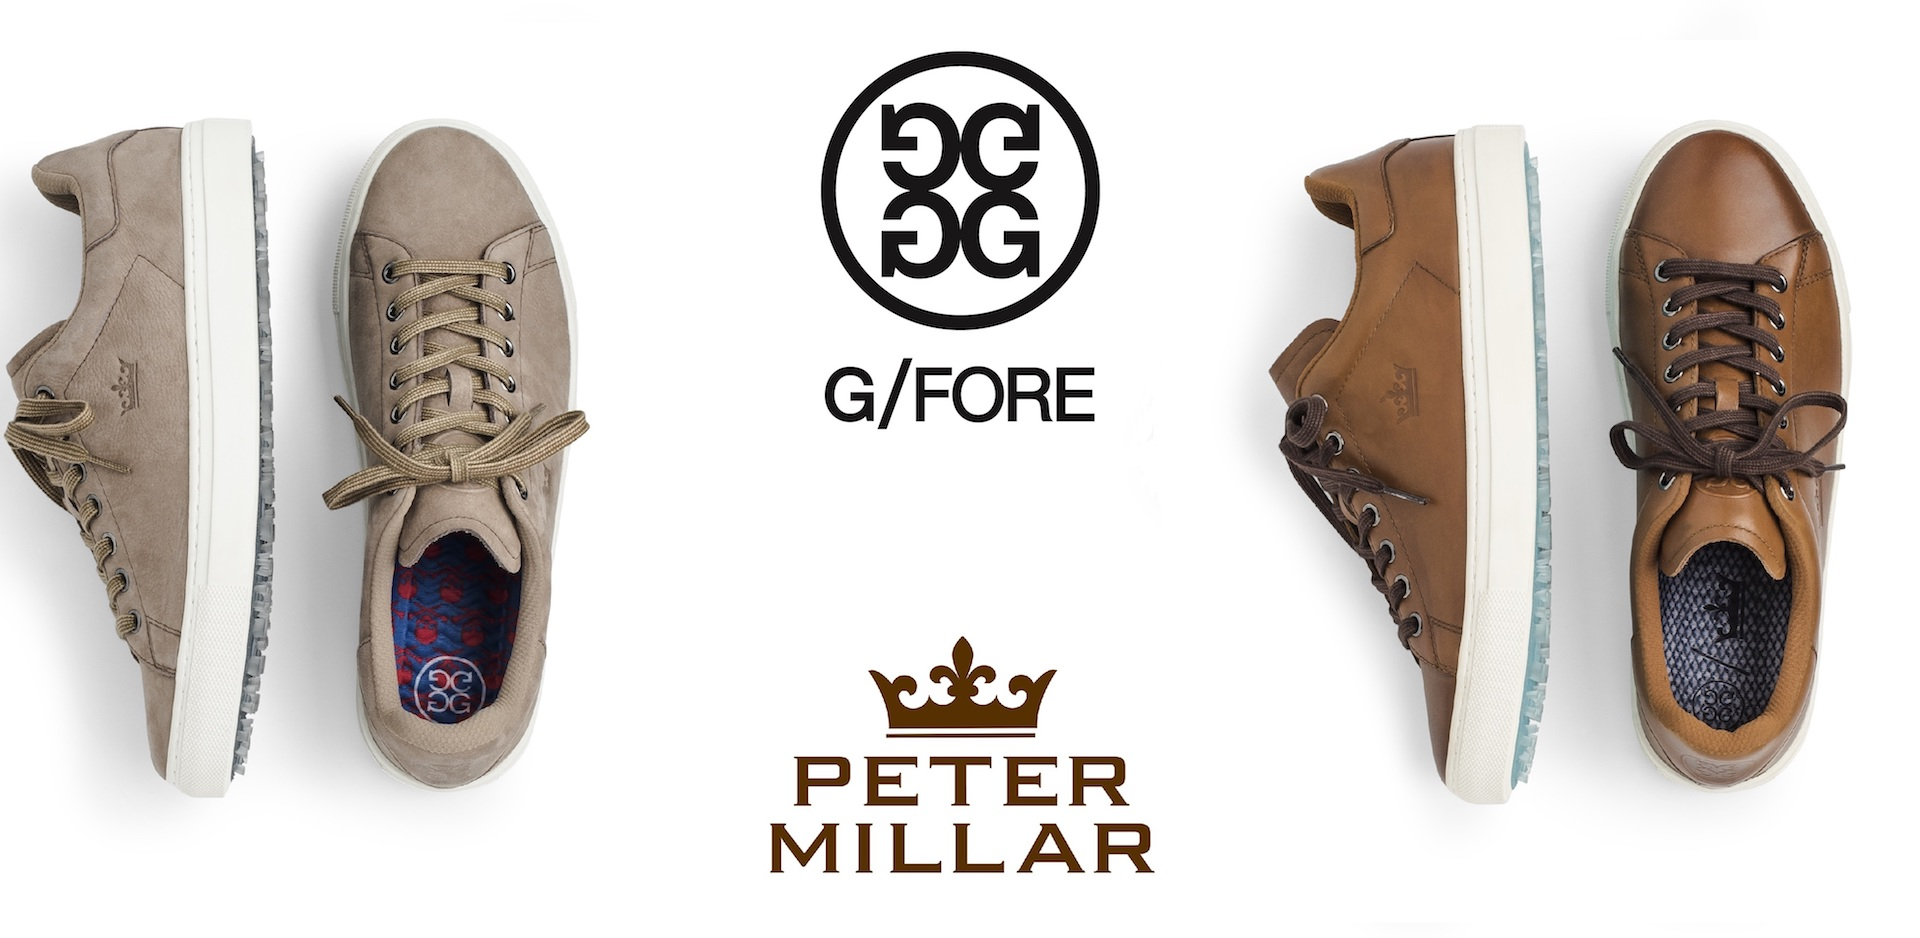 G/Fore and Peter Millar pair up